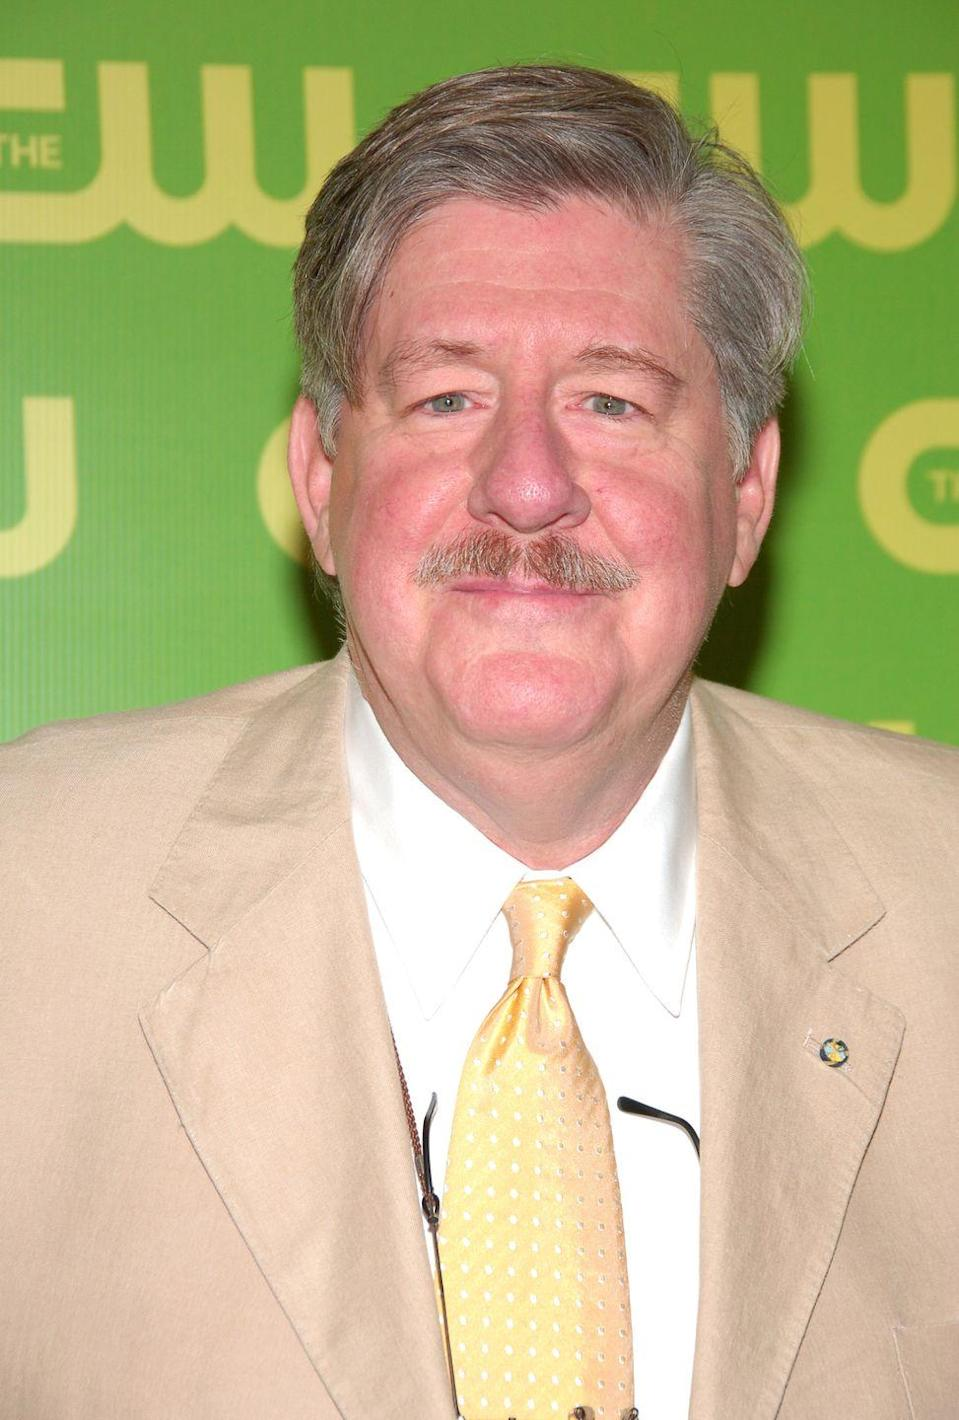 <p>Sadly, Edward passed away in New York City in 2014 at the age of 71, after fighting a battle with brain cancer. Towards the end of his life, the actor continued to work, appearing in <em>The Good Wife, The Wolf Of Wall Street, </em>and <em>Black Box.</em> The cast shared their heartbreak at his loss and his death was written into the reunion series.</p>